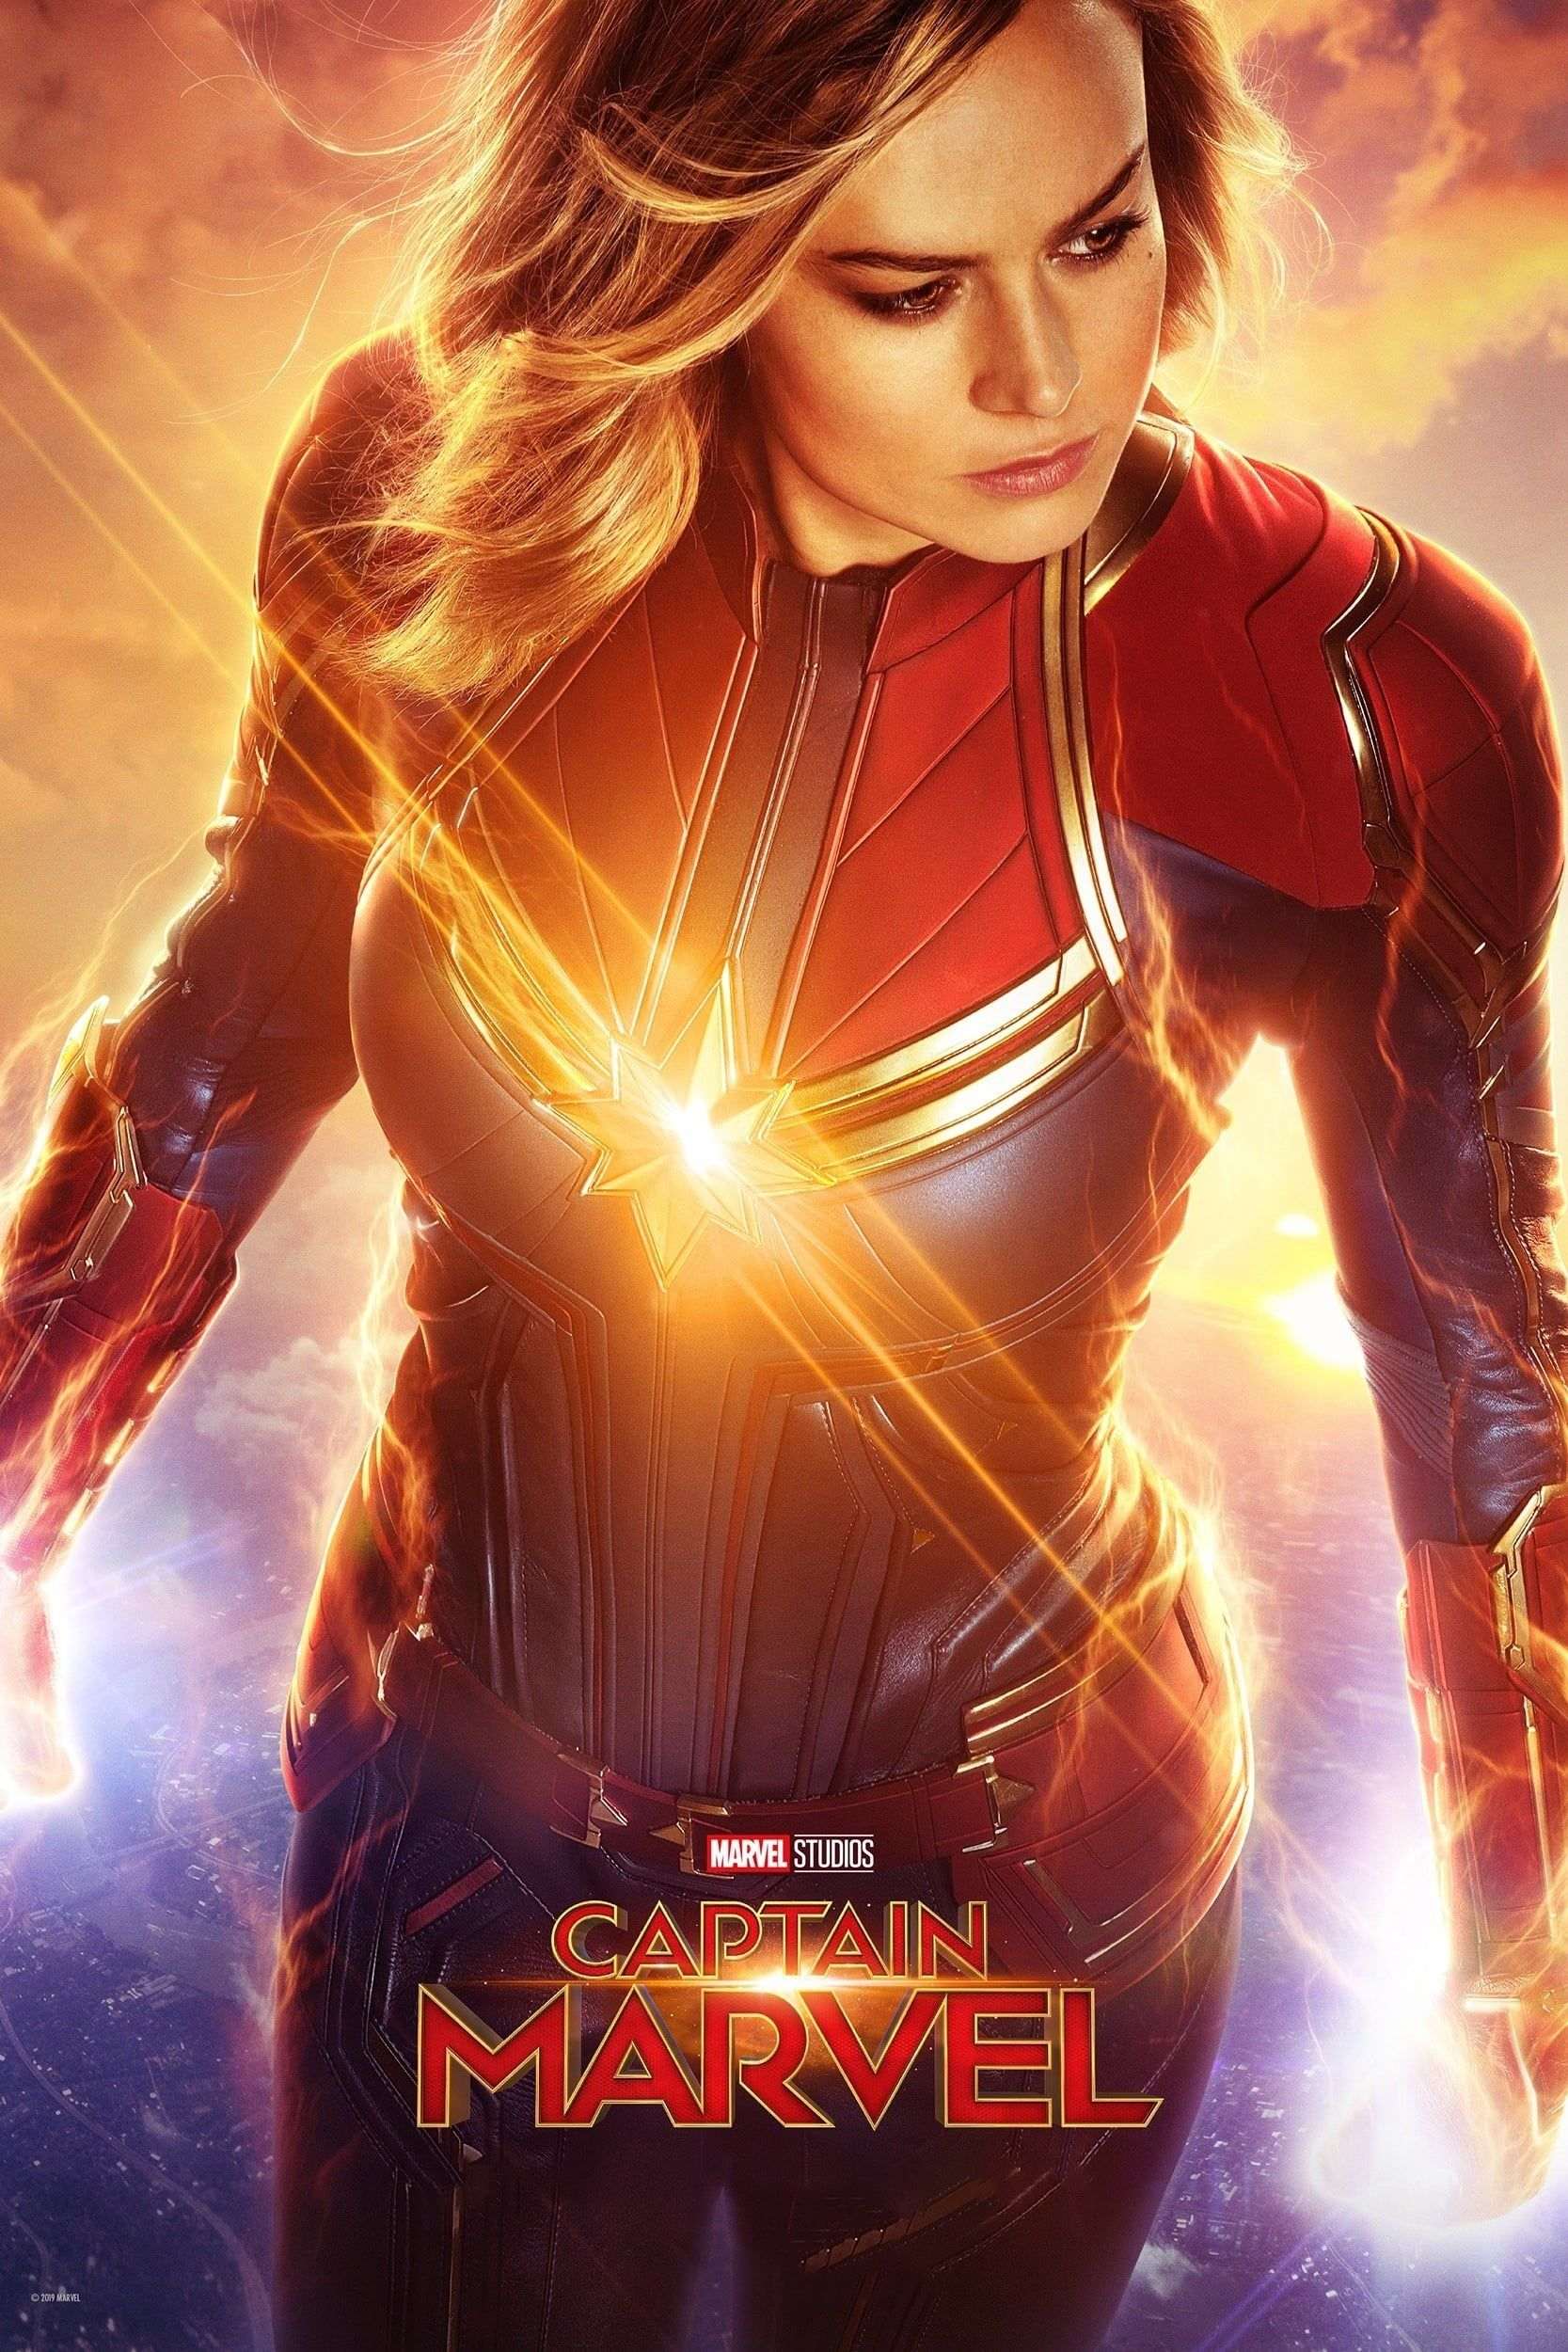 Ver Captain Marvel Pelicula Completa Latino Eñ Chileña Hd Subtitulado Actionmovie Newactionmovie Spymovie New Marvel Capitana Marvel Peliculas Marvel